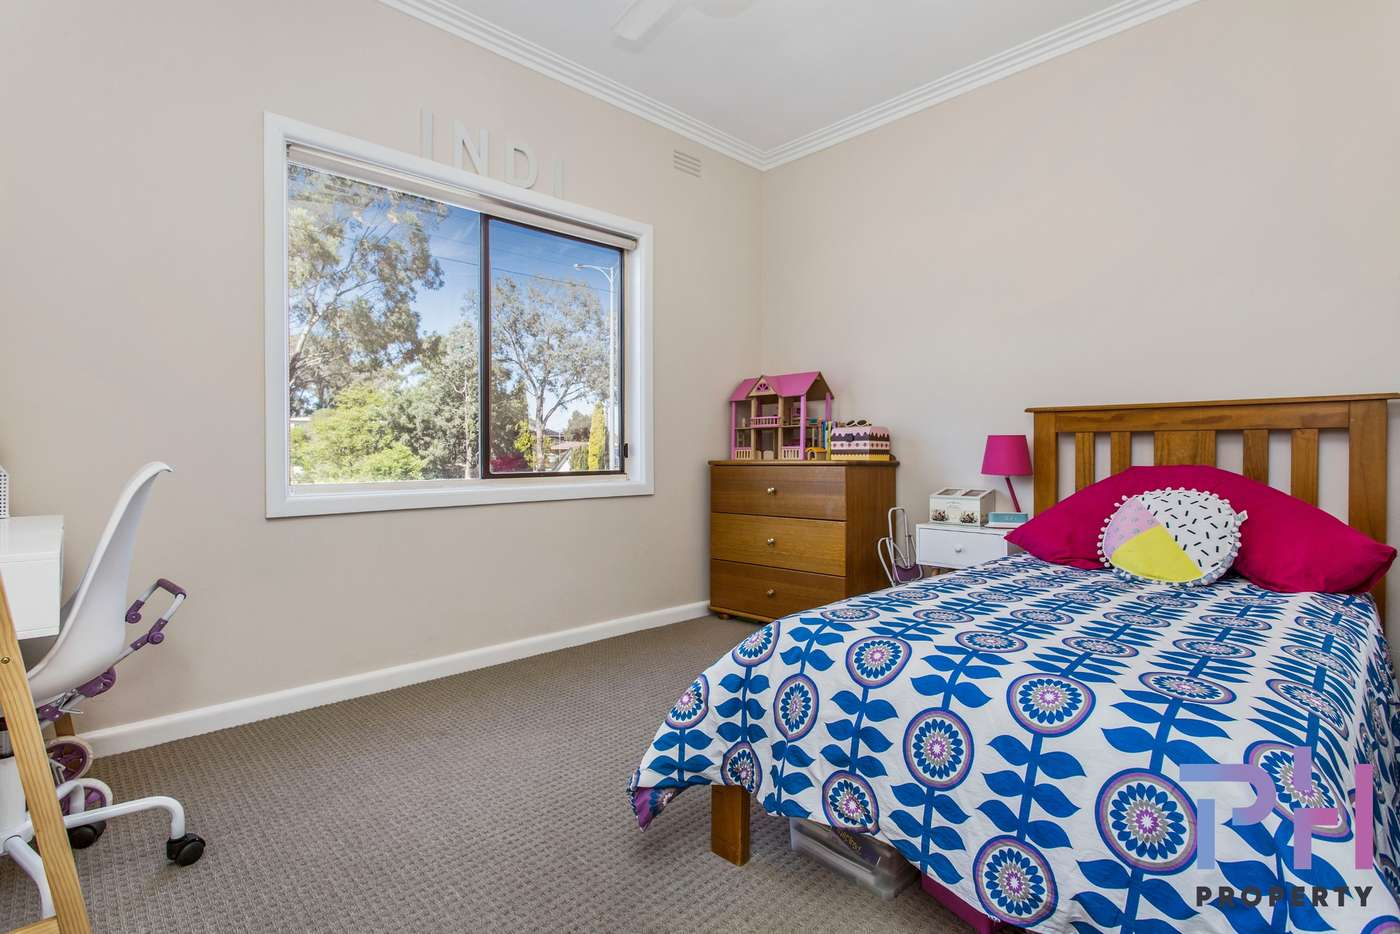 Seventh view of Homely house listing, 99 Condon Street, Kennington VIC 3550